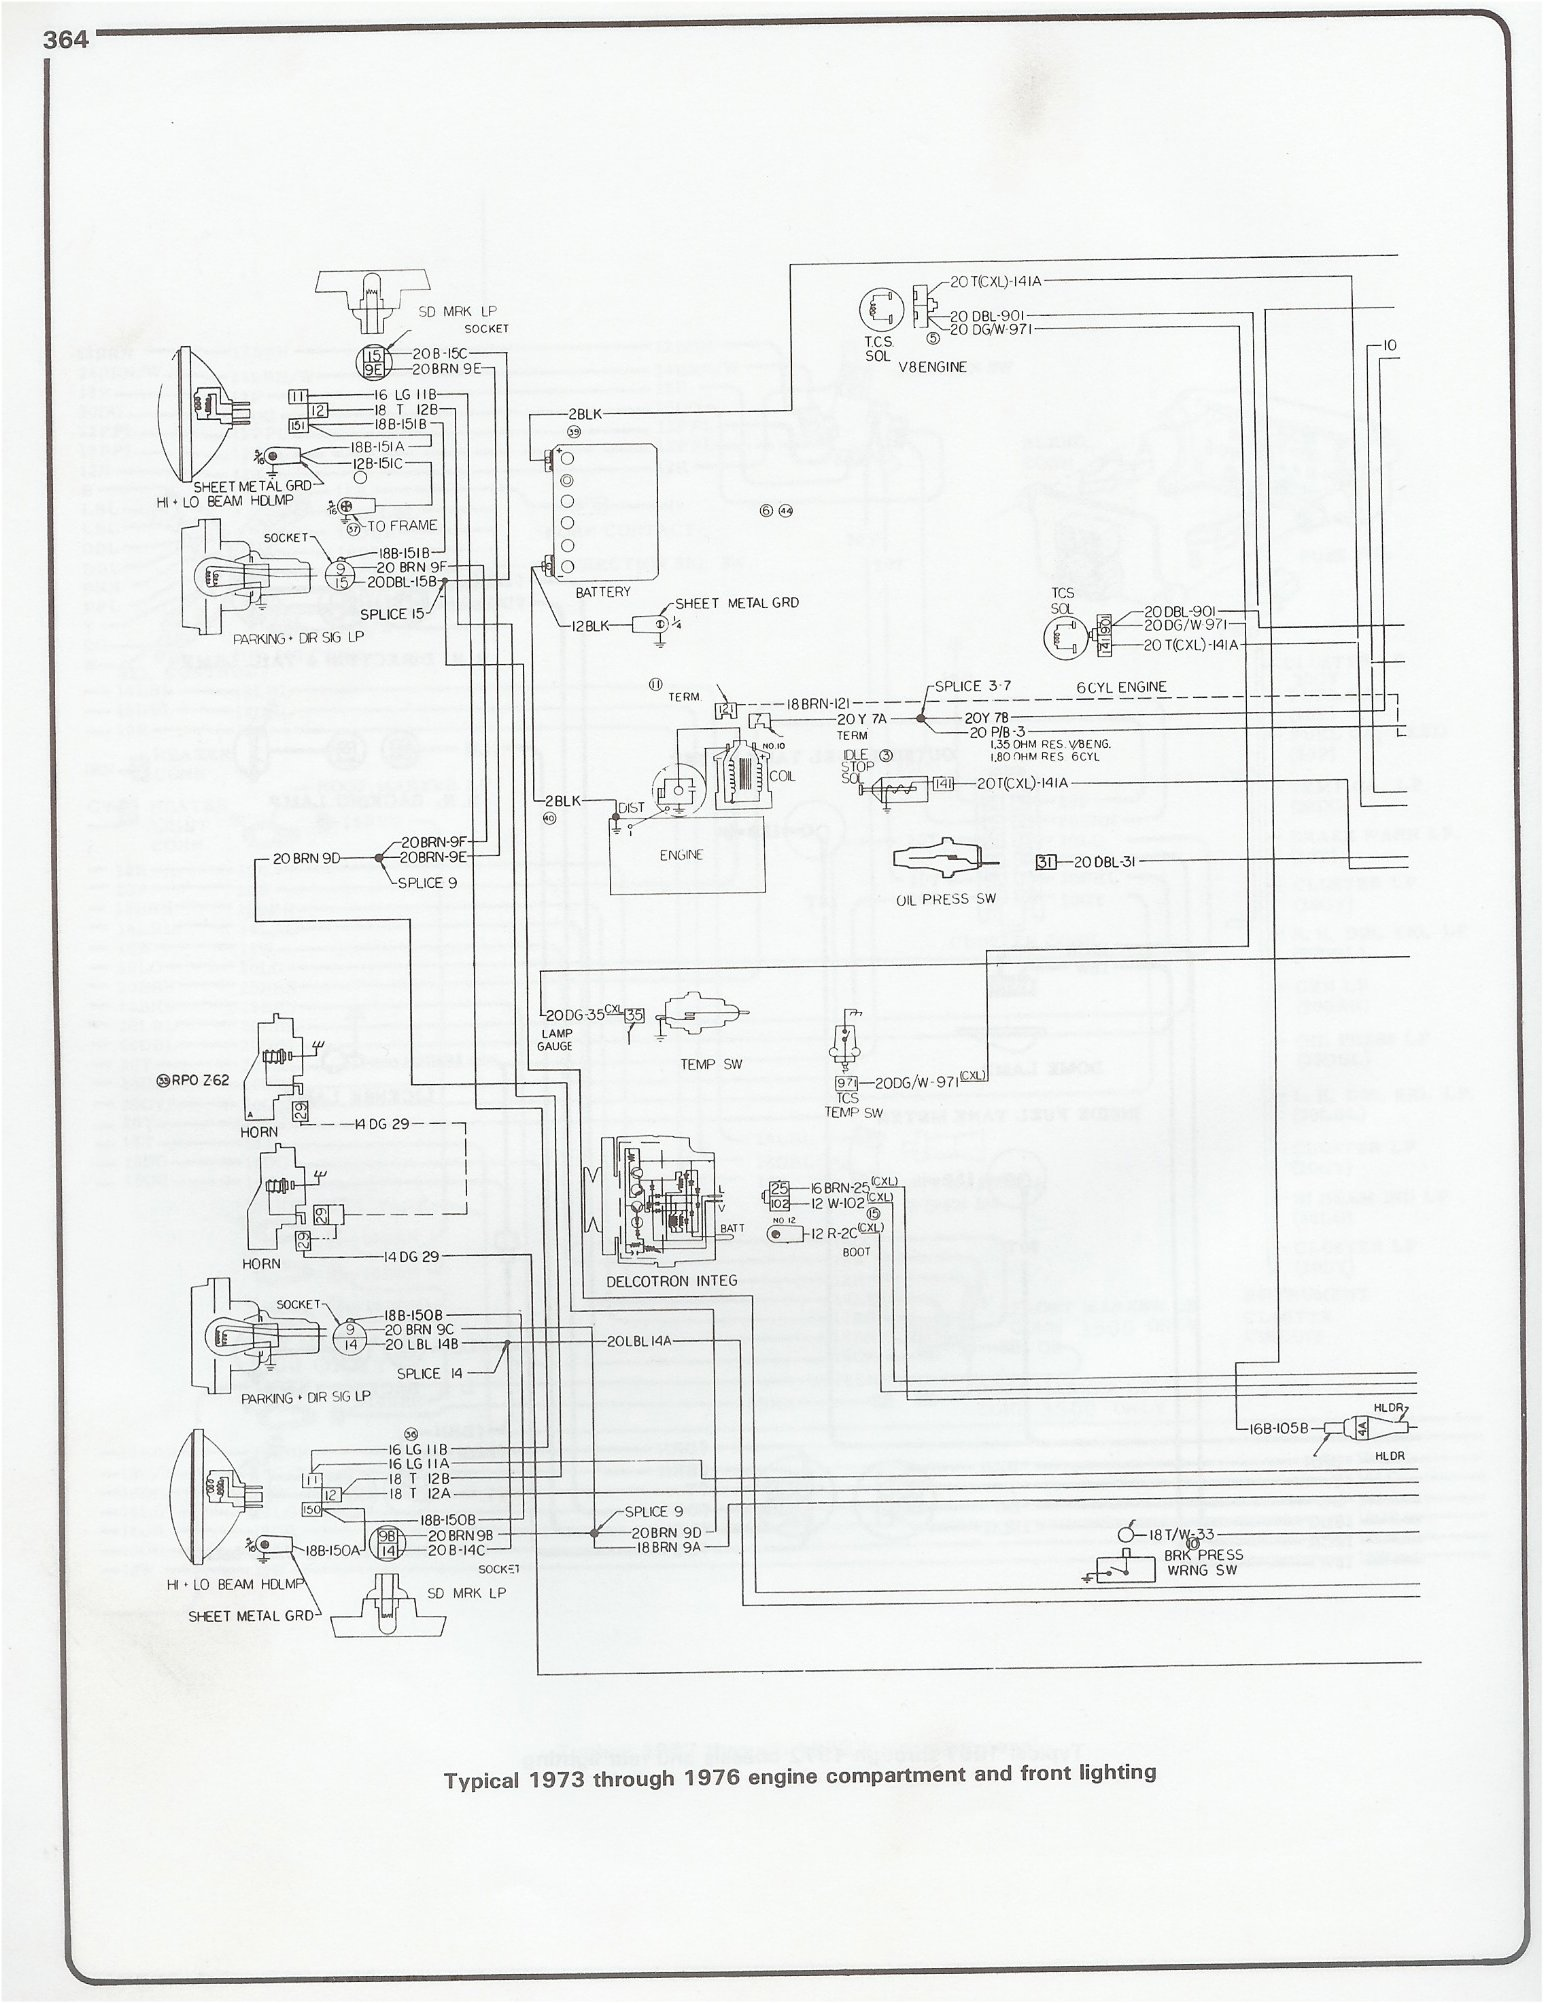 87 chevy wiring diagram schematic complete 73    87       wiring       diagrams     complete 73    87       wiring       diagrams